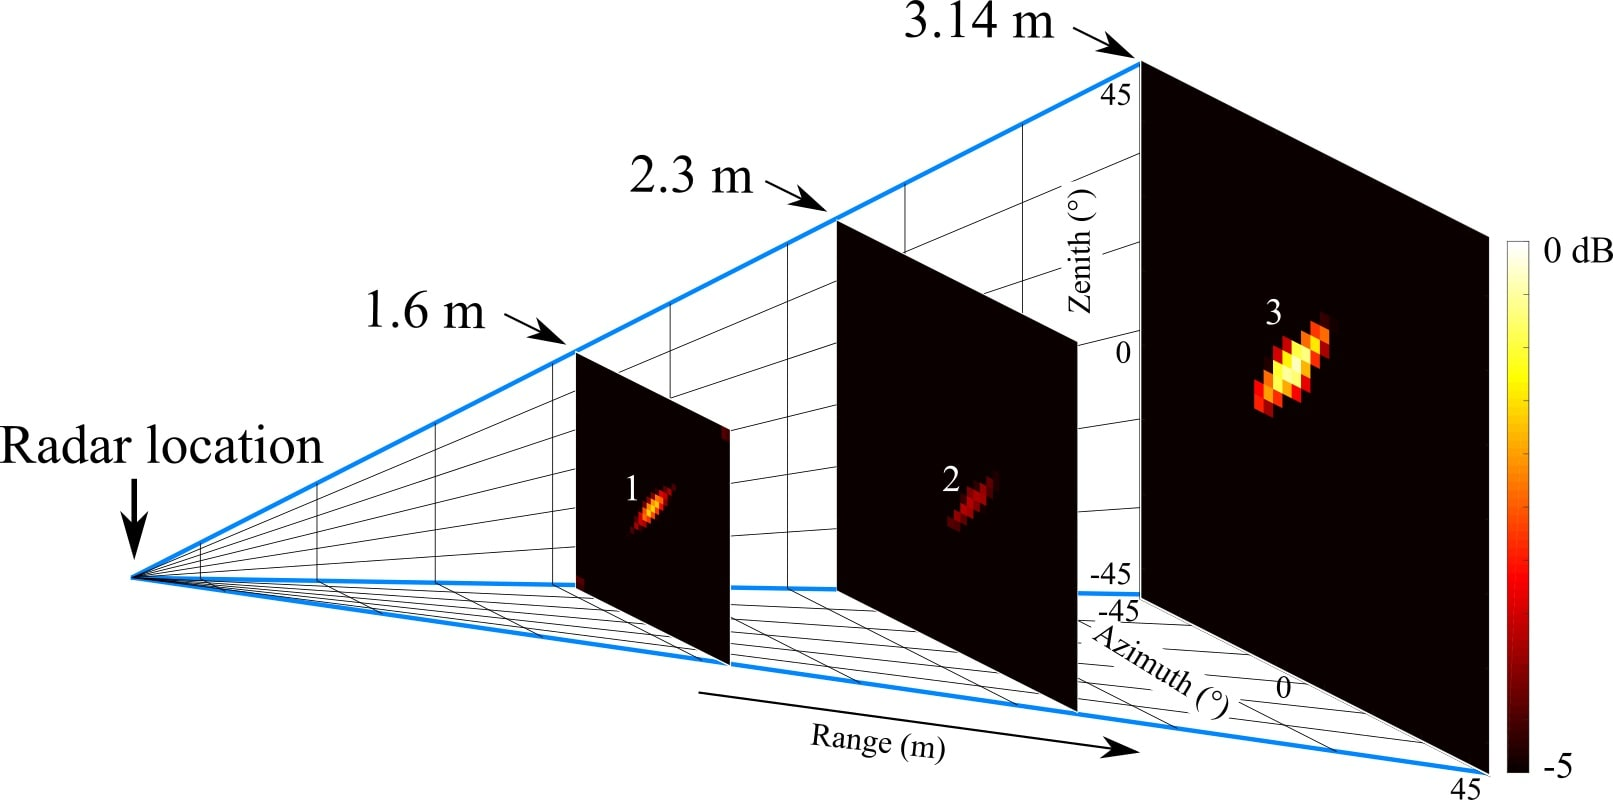 Fig. 7. Images of the three targets with the MIMO radar prototype